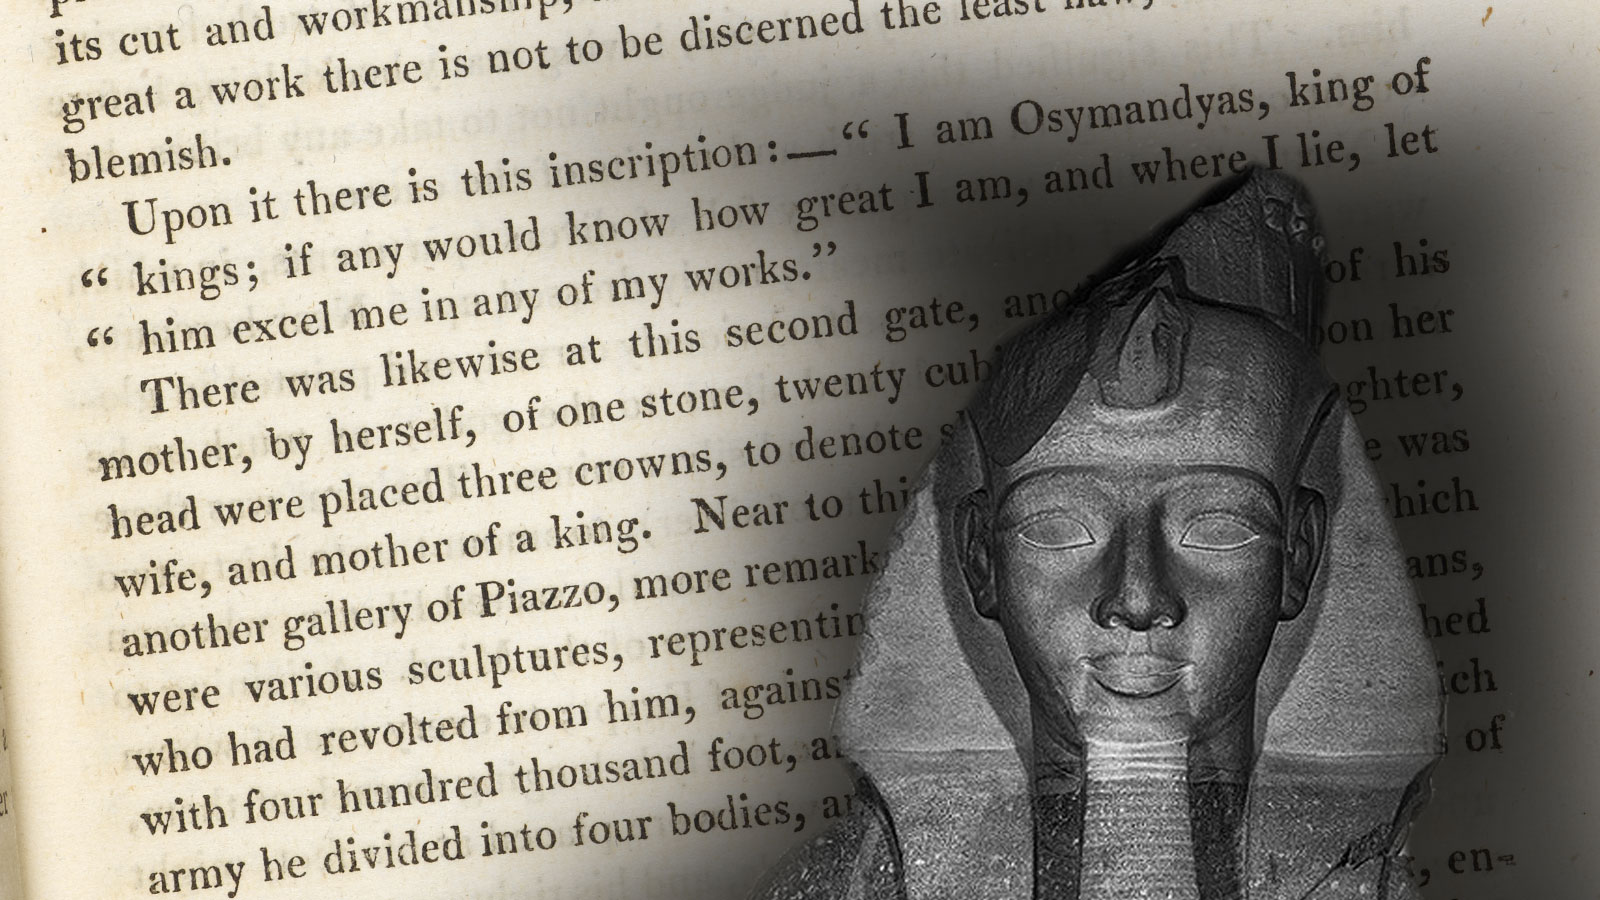 An introduction to 'Ozymandias'